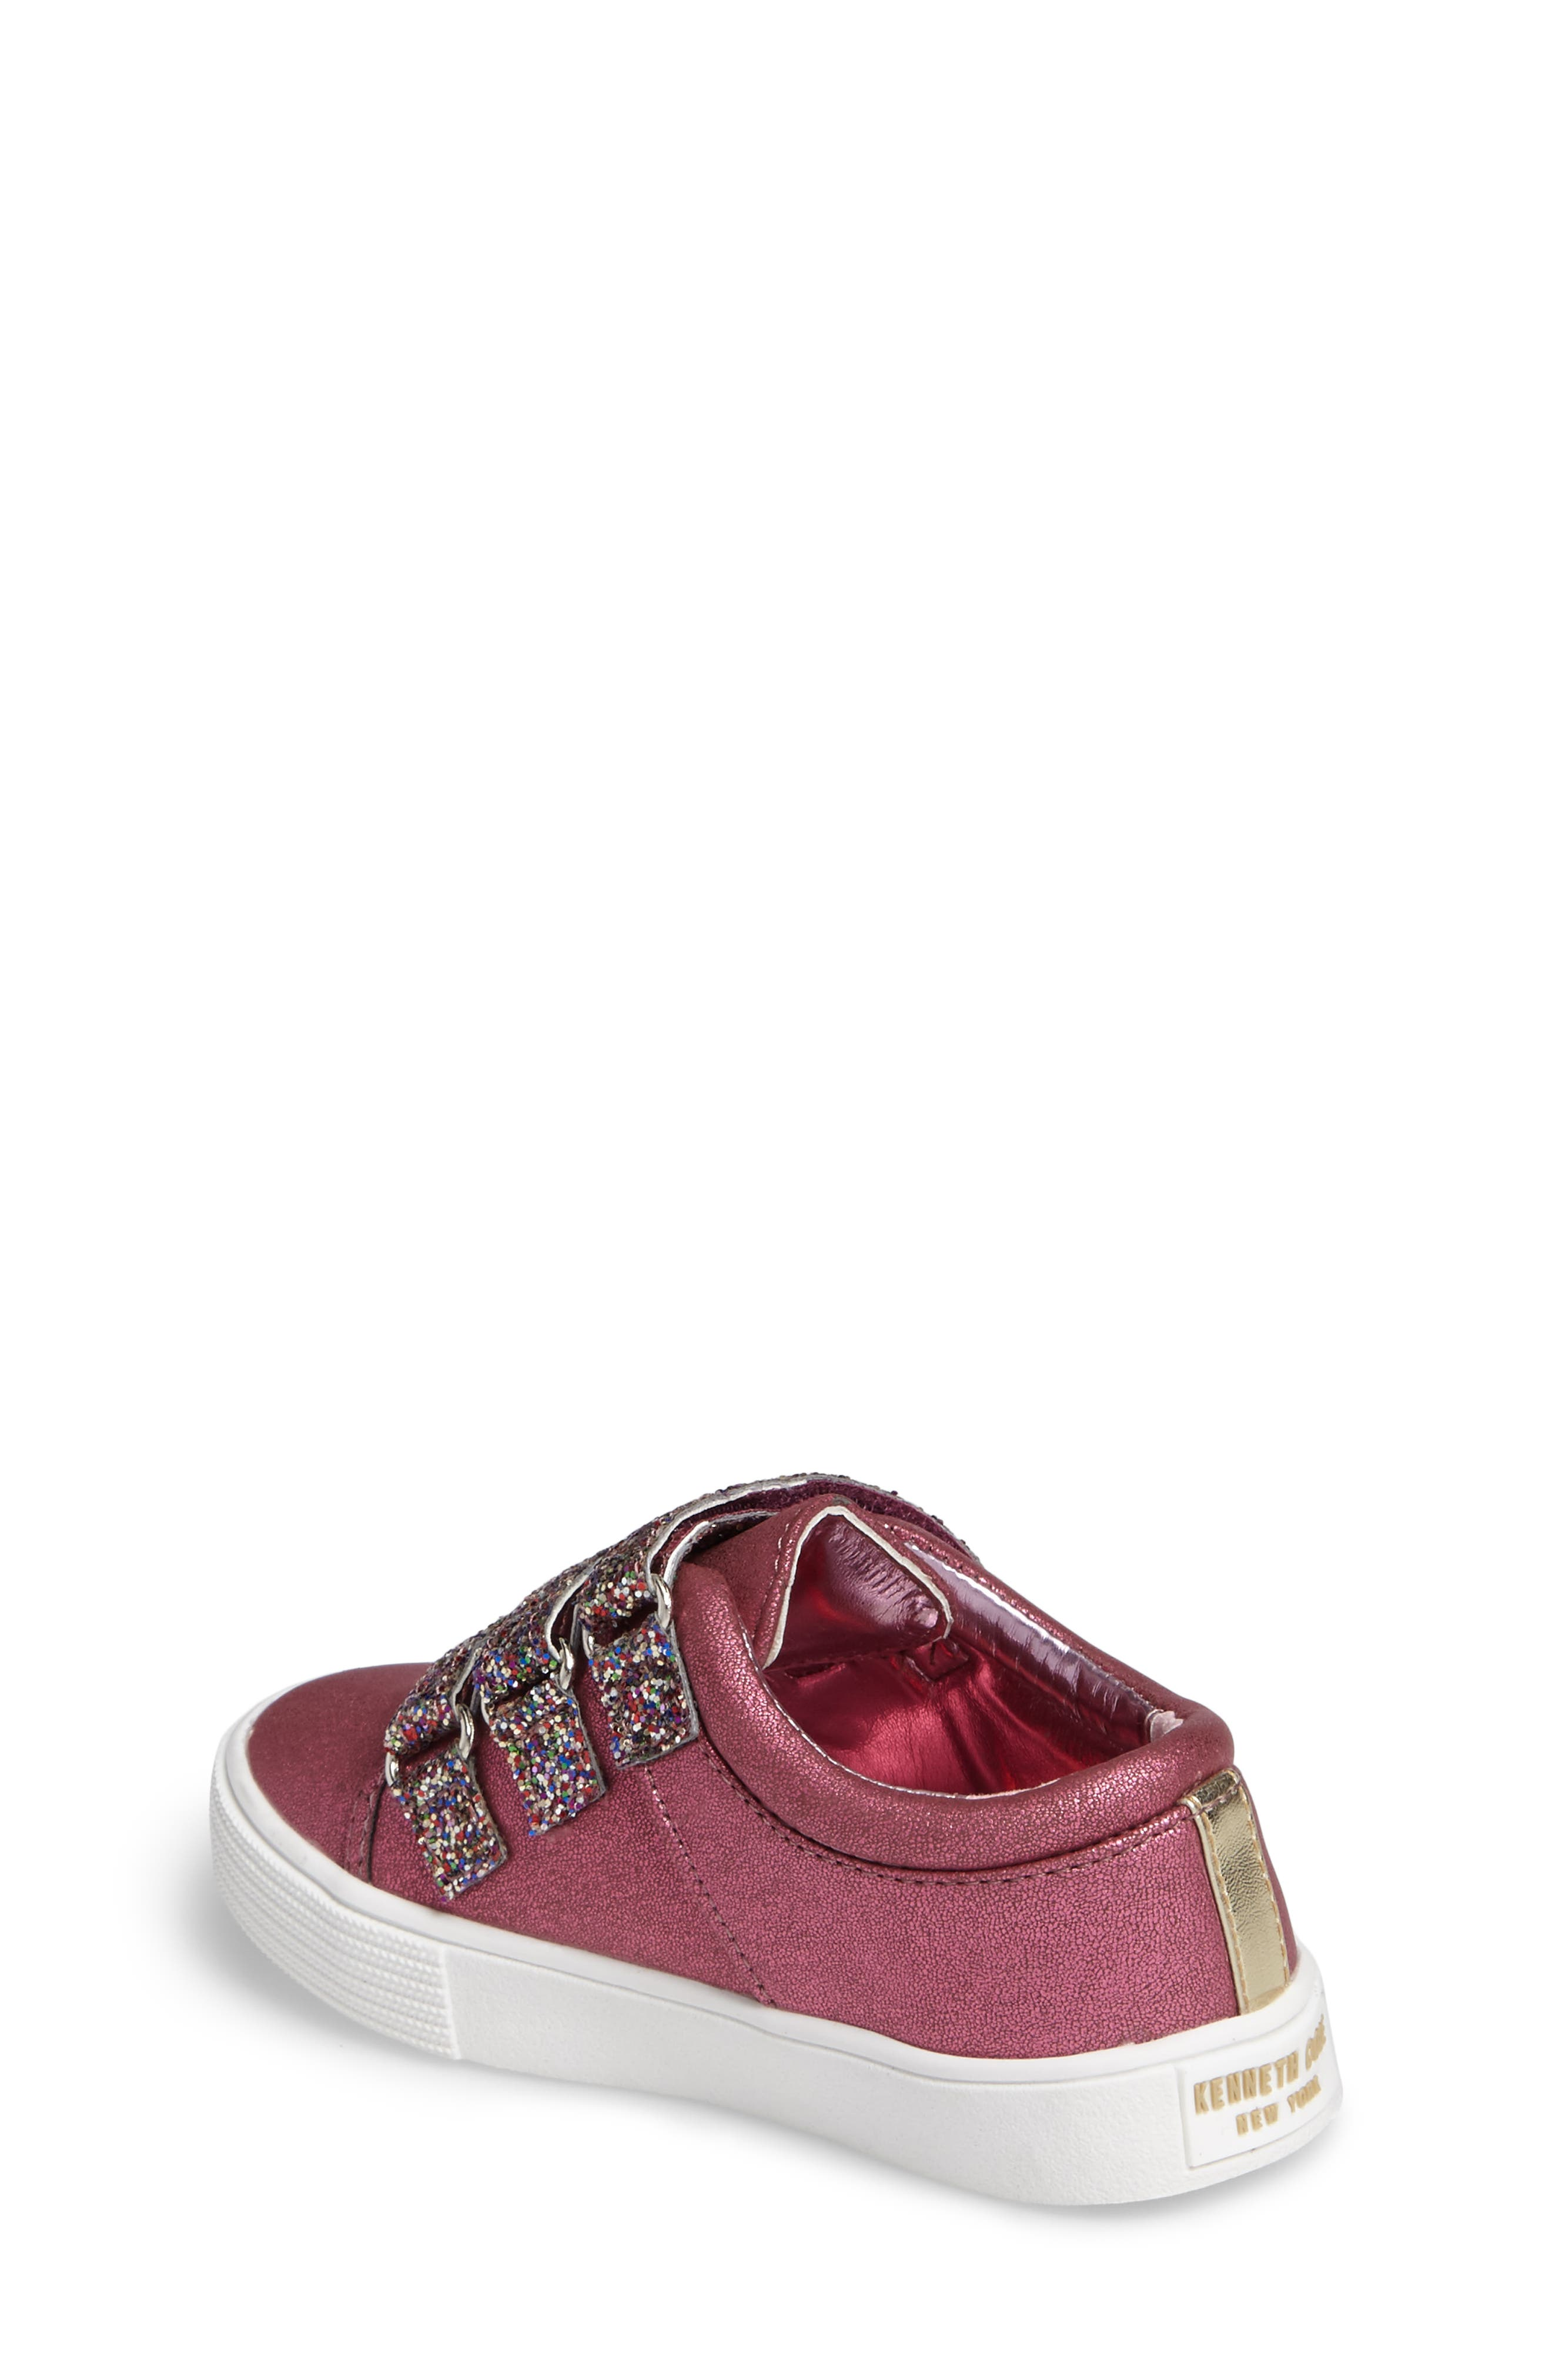 Alternate Image 2  - Kenneth Cole New York Kam Glitter Strap Sneaker (Walker & Toddler)